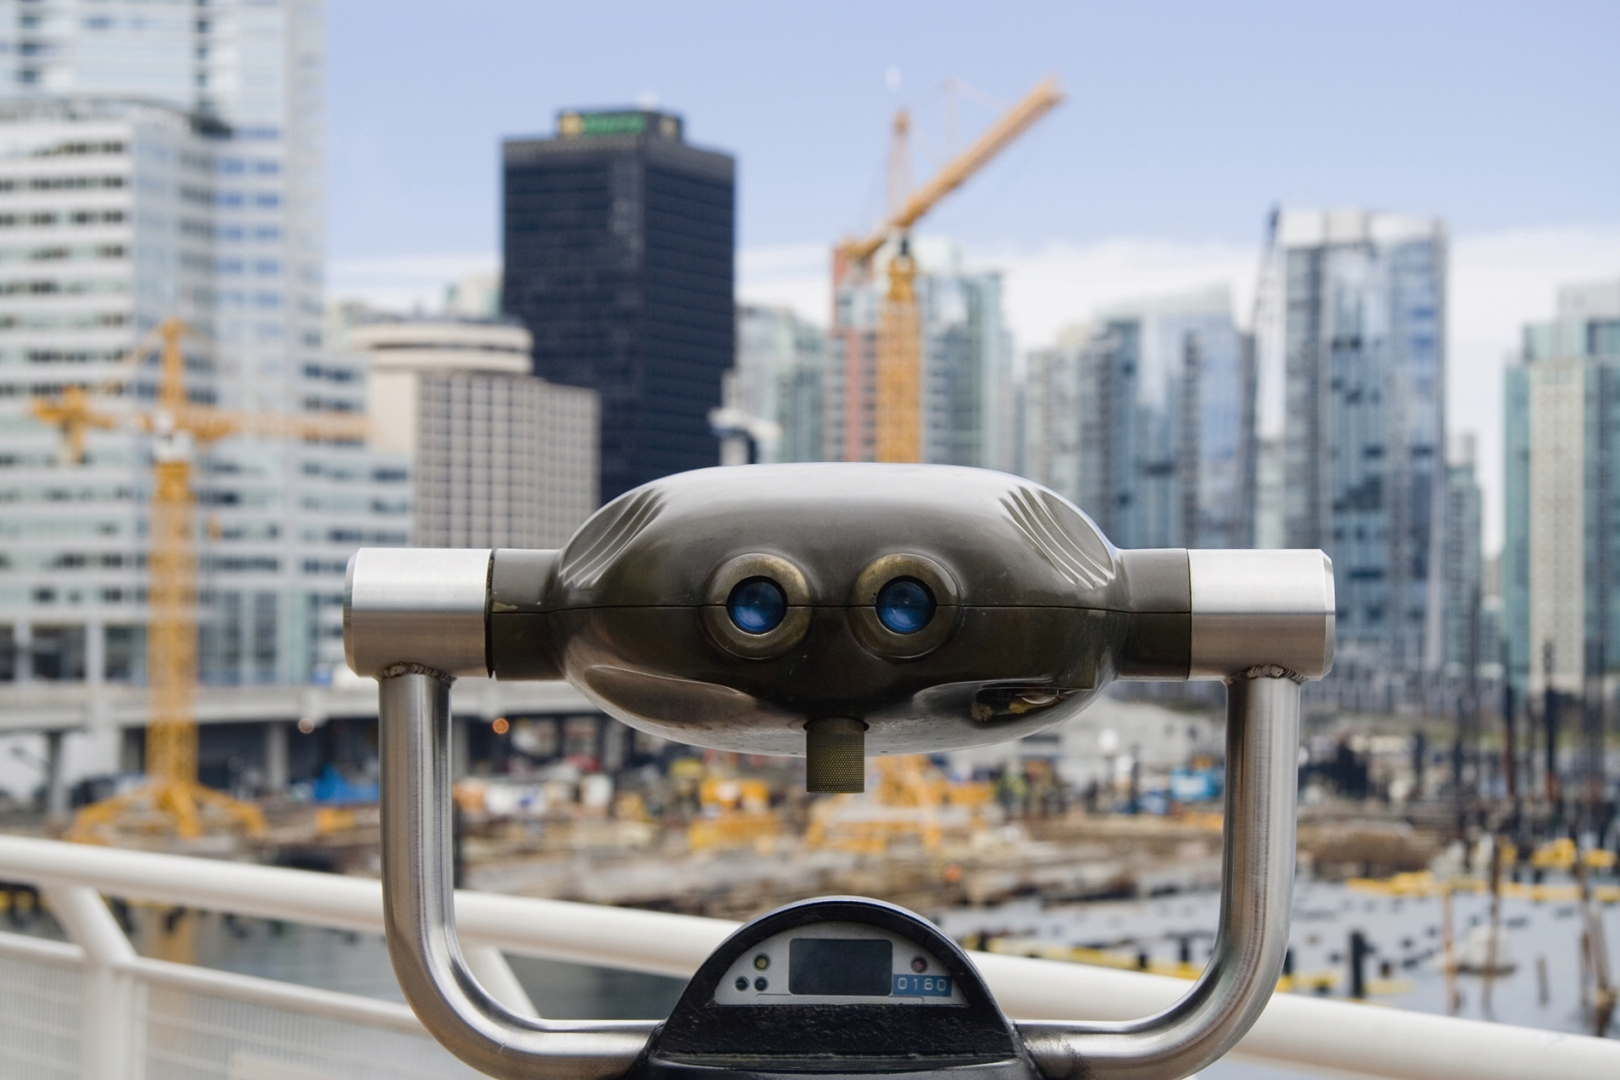 Binoculars overlooking construction in a big city